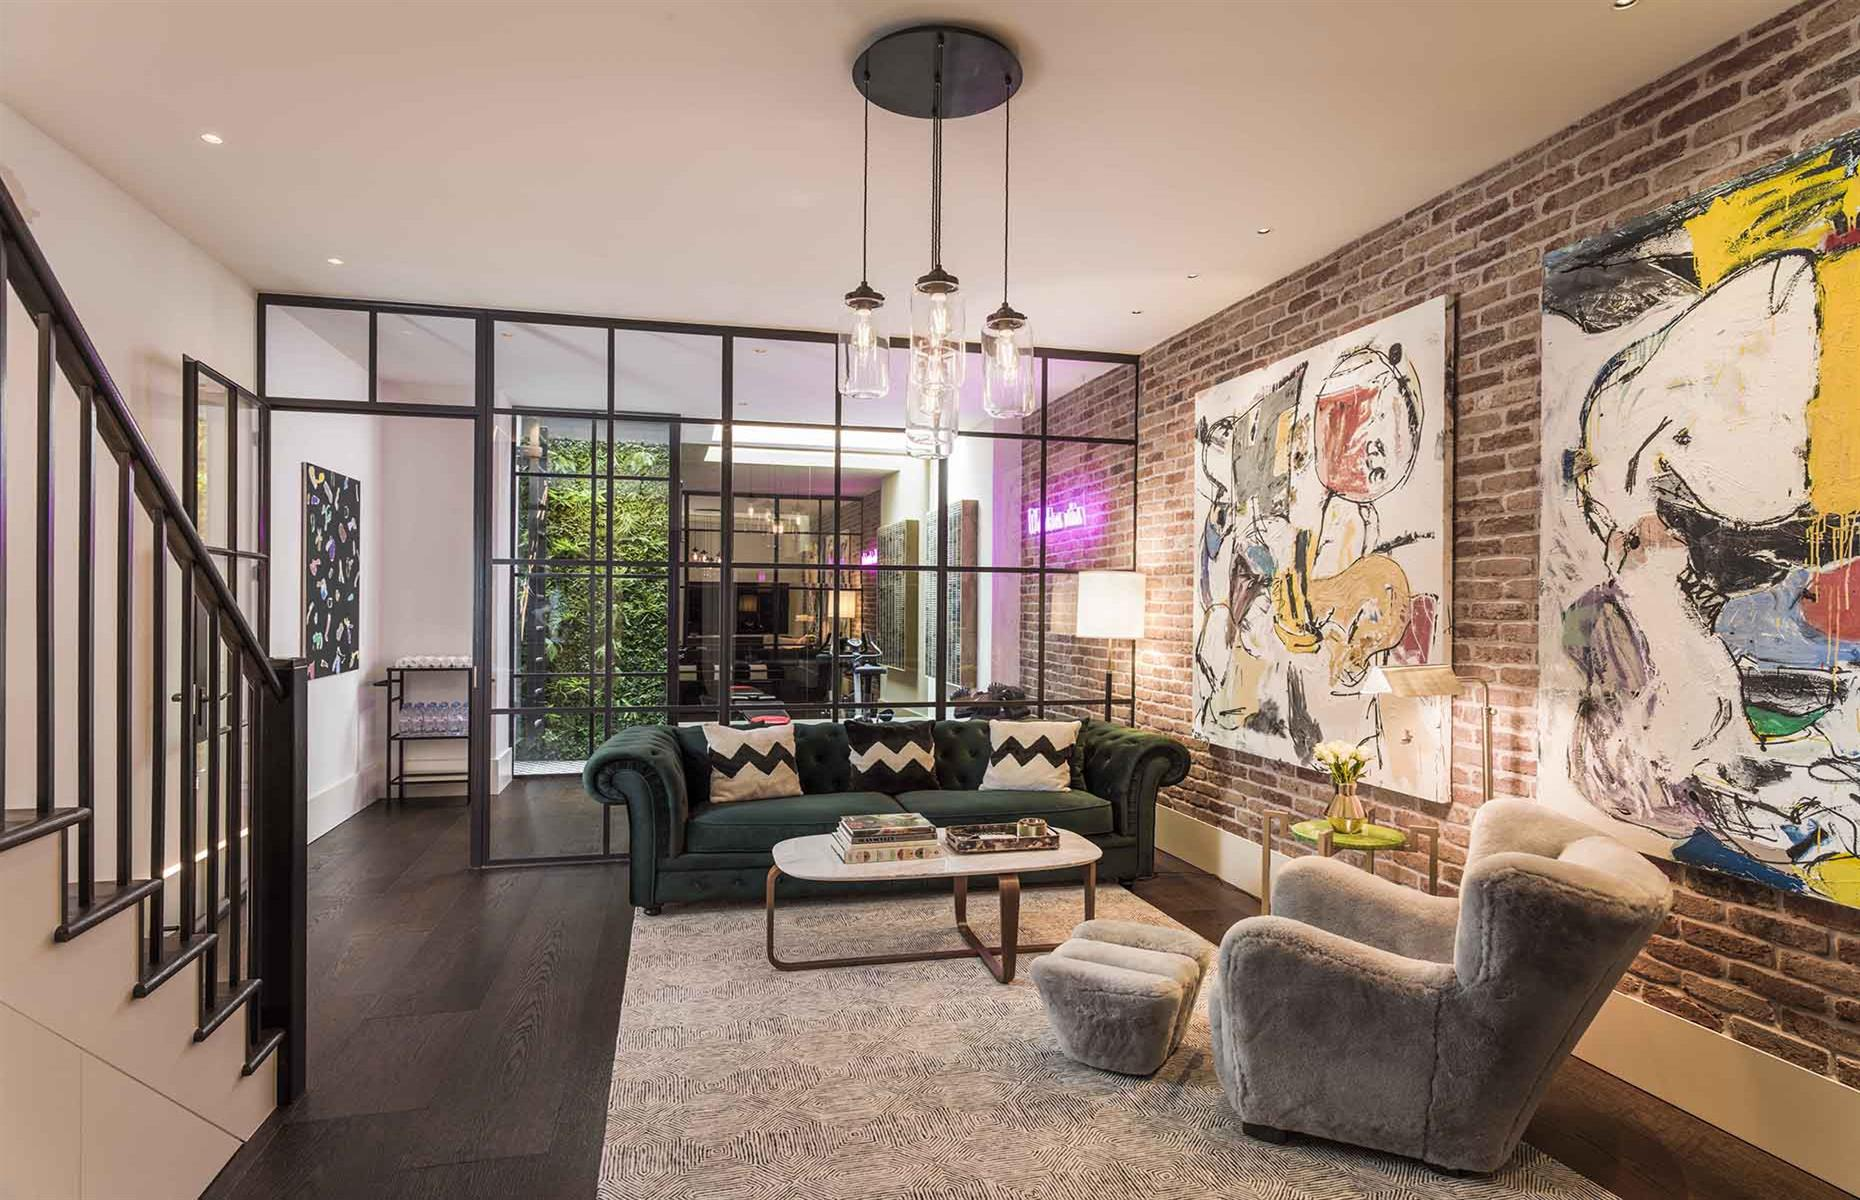 Investment duo Hugo and Elnaz transformed a dilapidated wreck into a £4.5 million ($5.6m) townhouse. Image: Elnaz Namaki / HvB Development